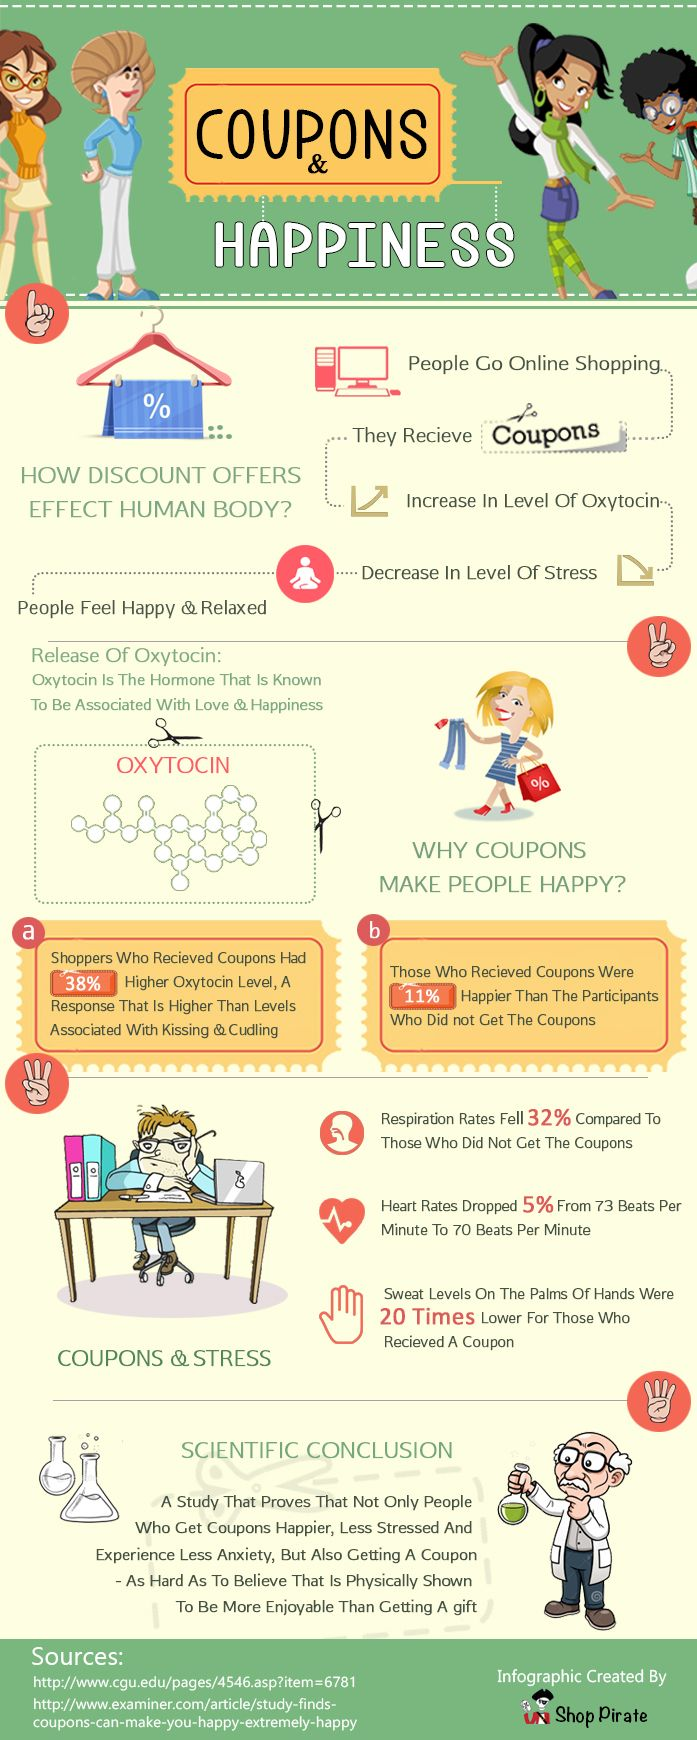 Shoppers using discount coupons are more happy and relaxed.